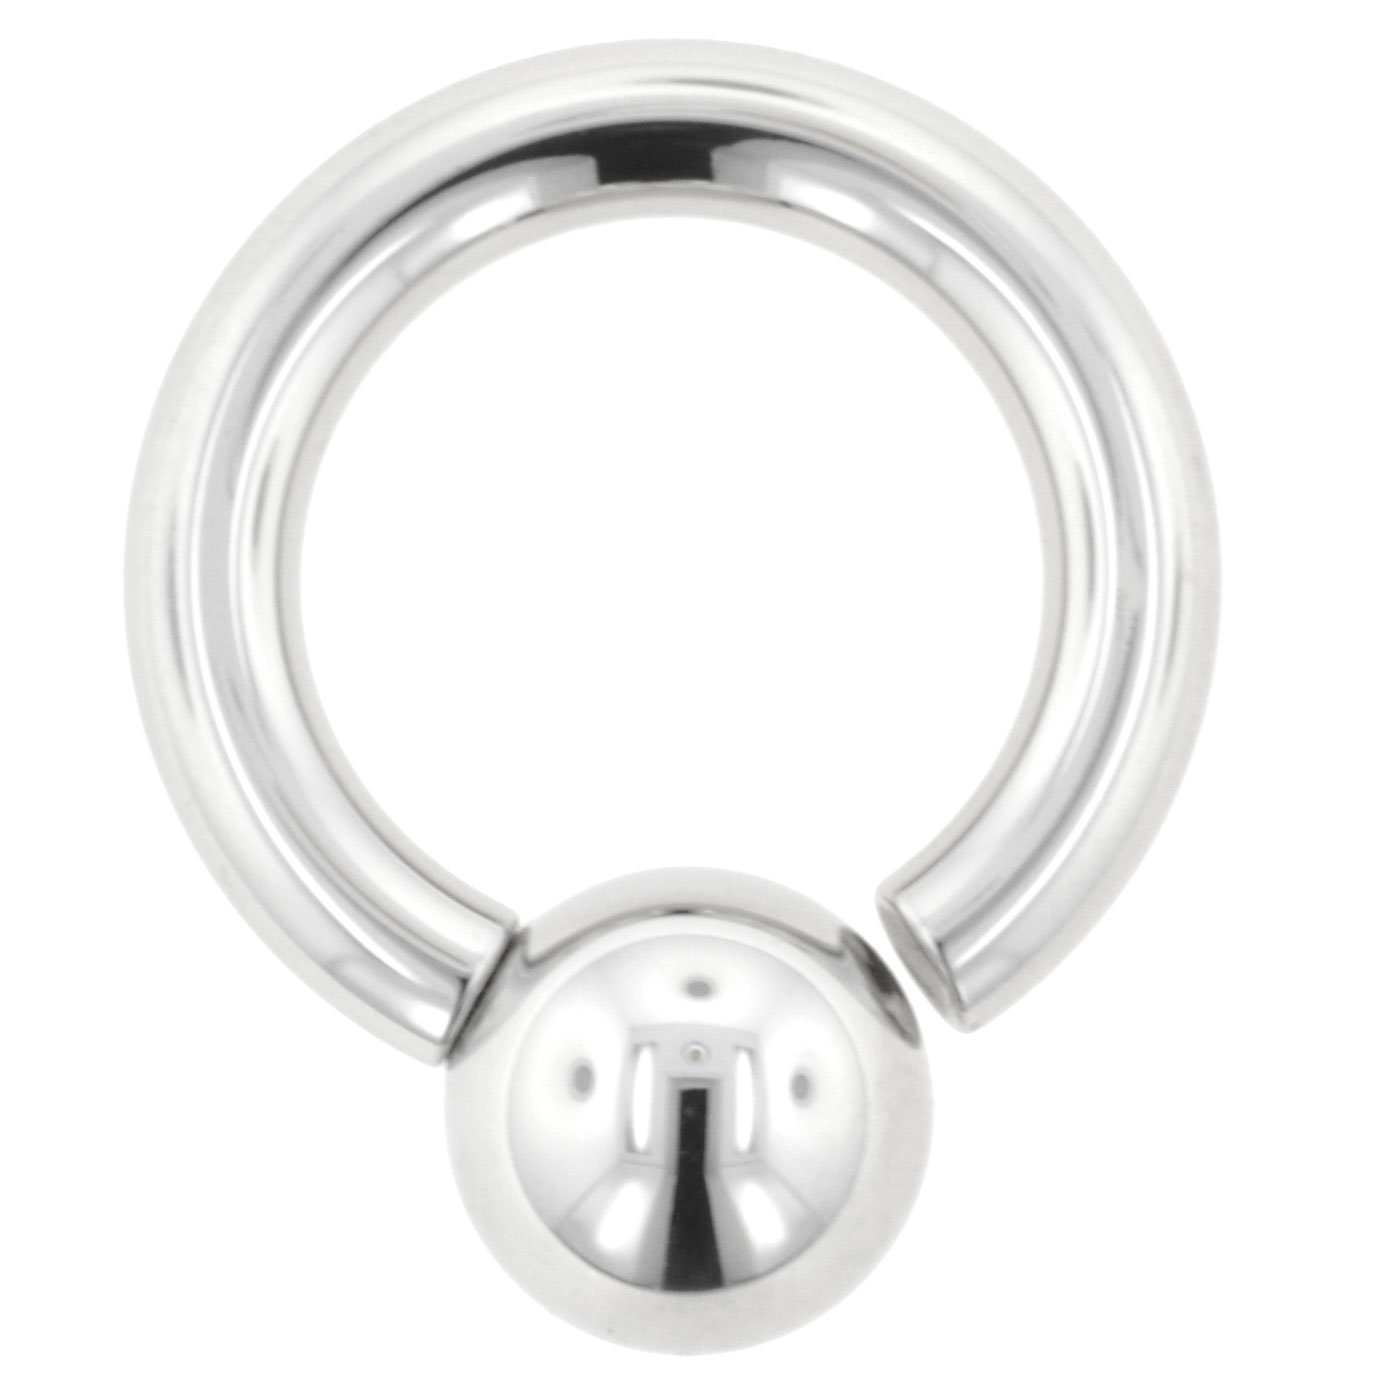 One Stainless Steel Screw On Ball Ring: 8g 3/4'' Ball: 3/8'' (SOLD INDIVIDUALLY. ORDER TWO FOR A PAIR.)